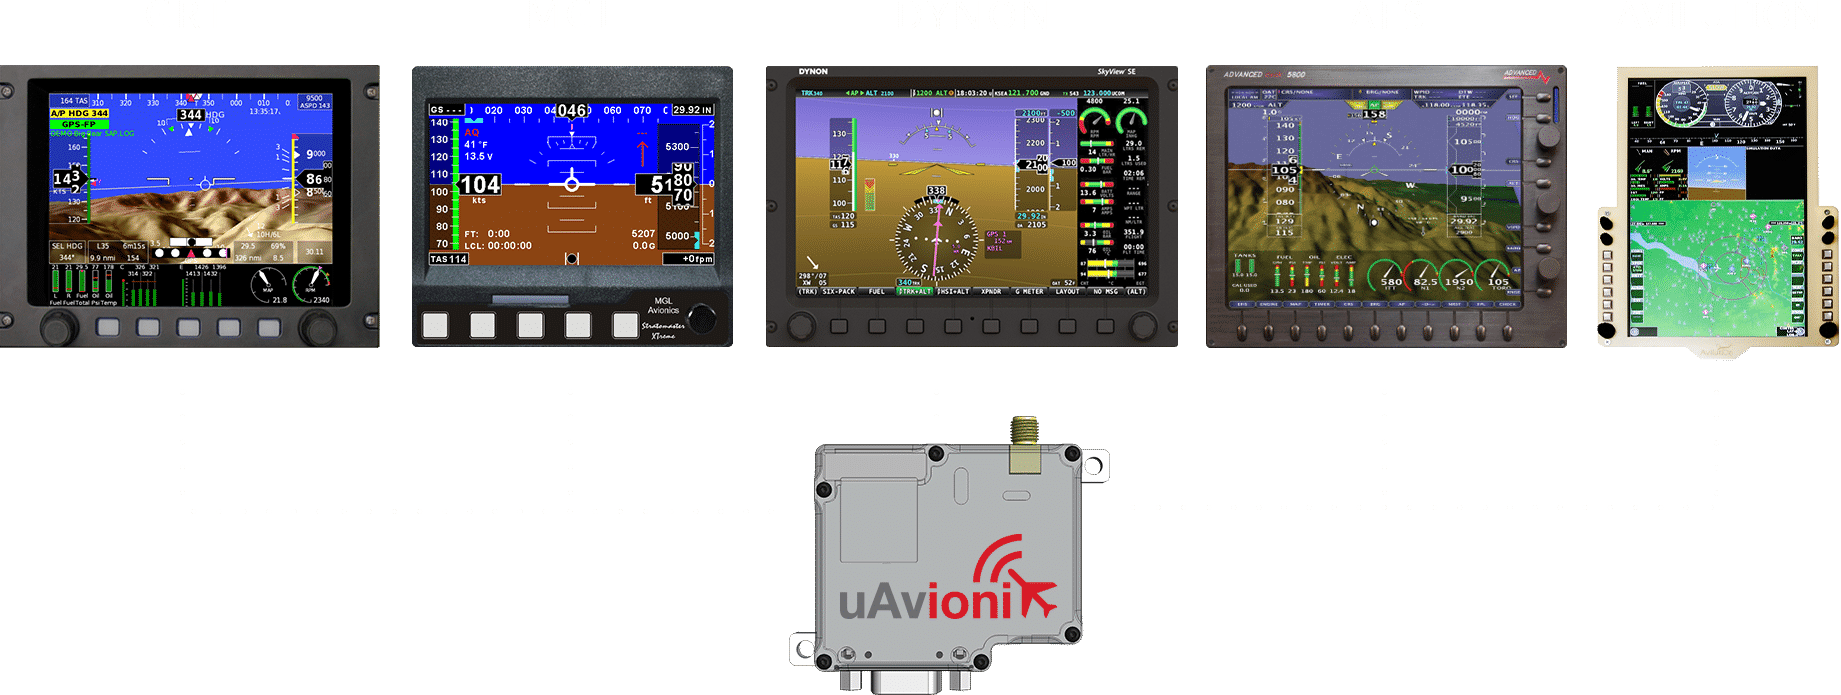 uAvionix echoESX Mode S Transponder works with all EFIS